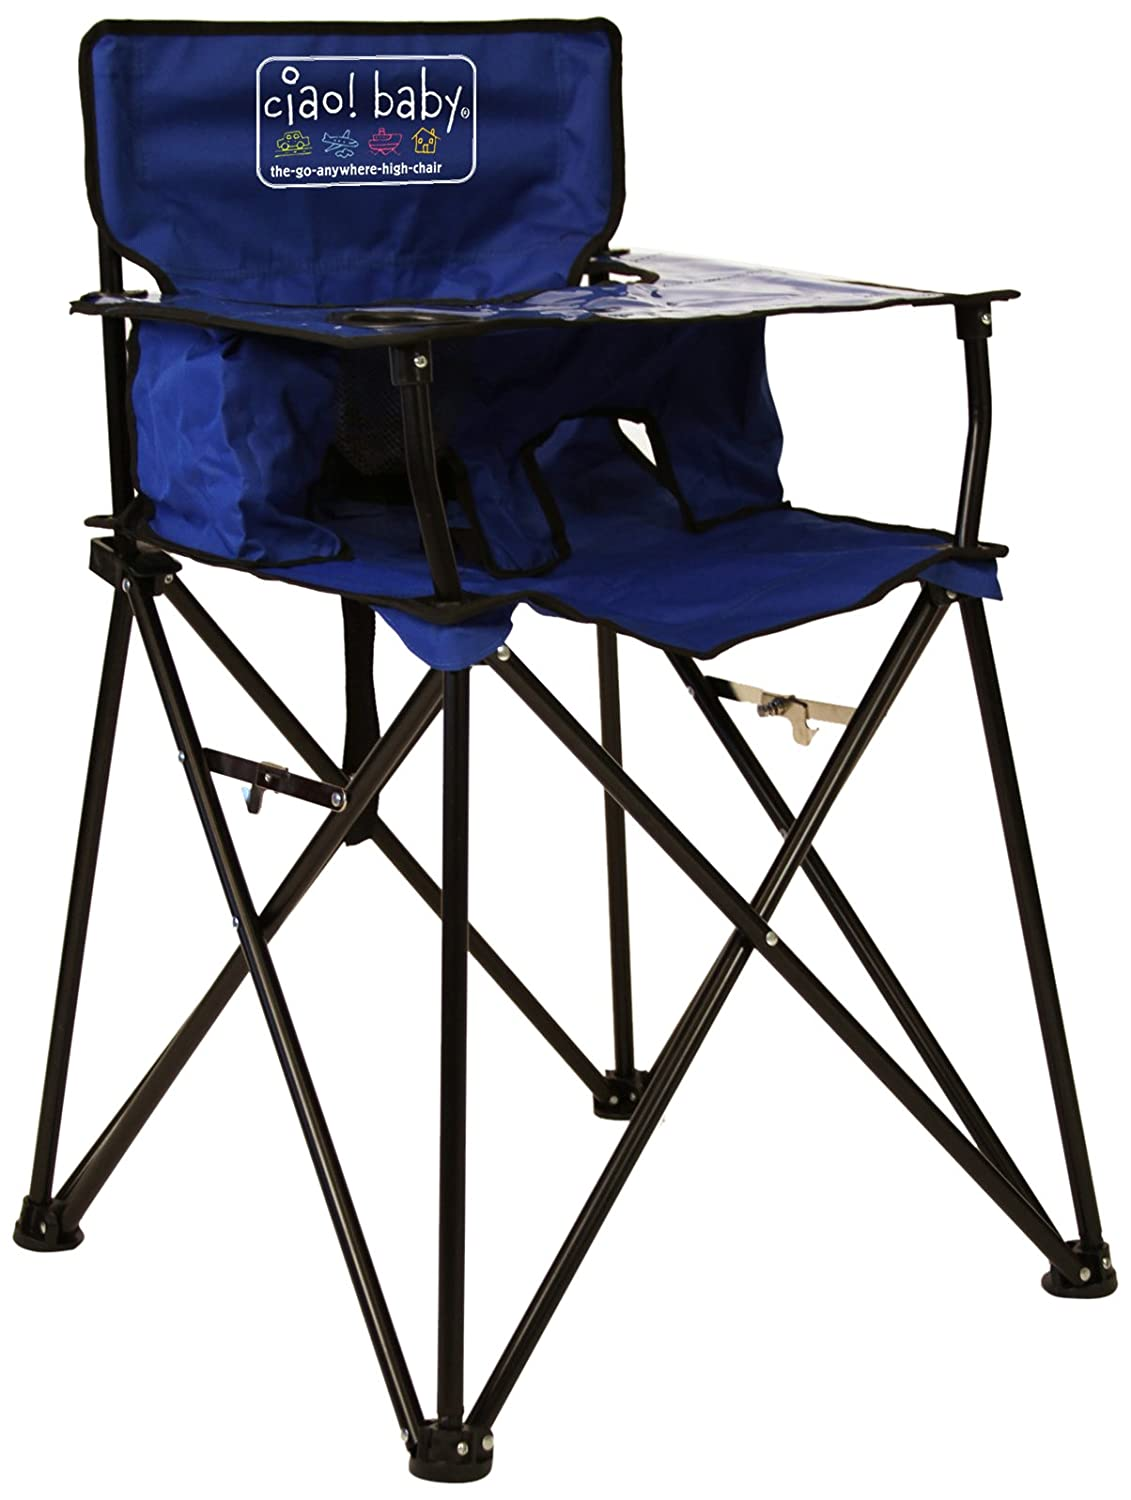 Beautiful Amazon.com : Ciao! Baby Portable Travel Highchair, Blue : Childrens  Highchairs : Baby